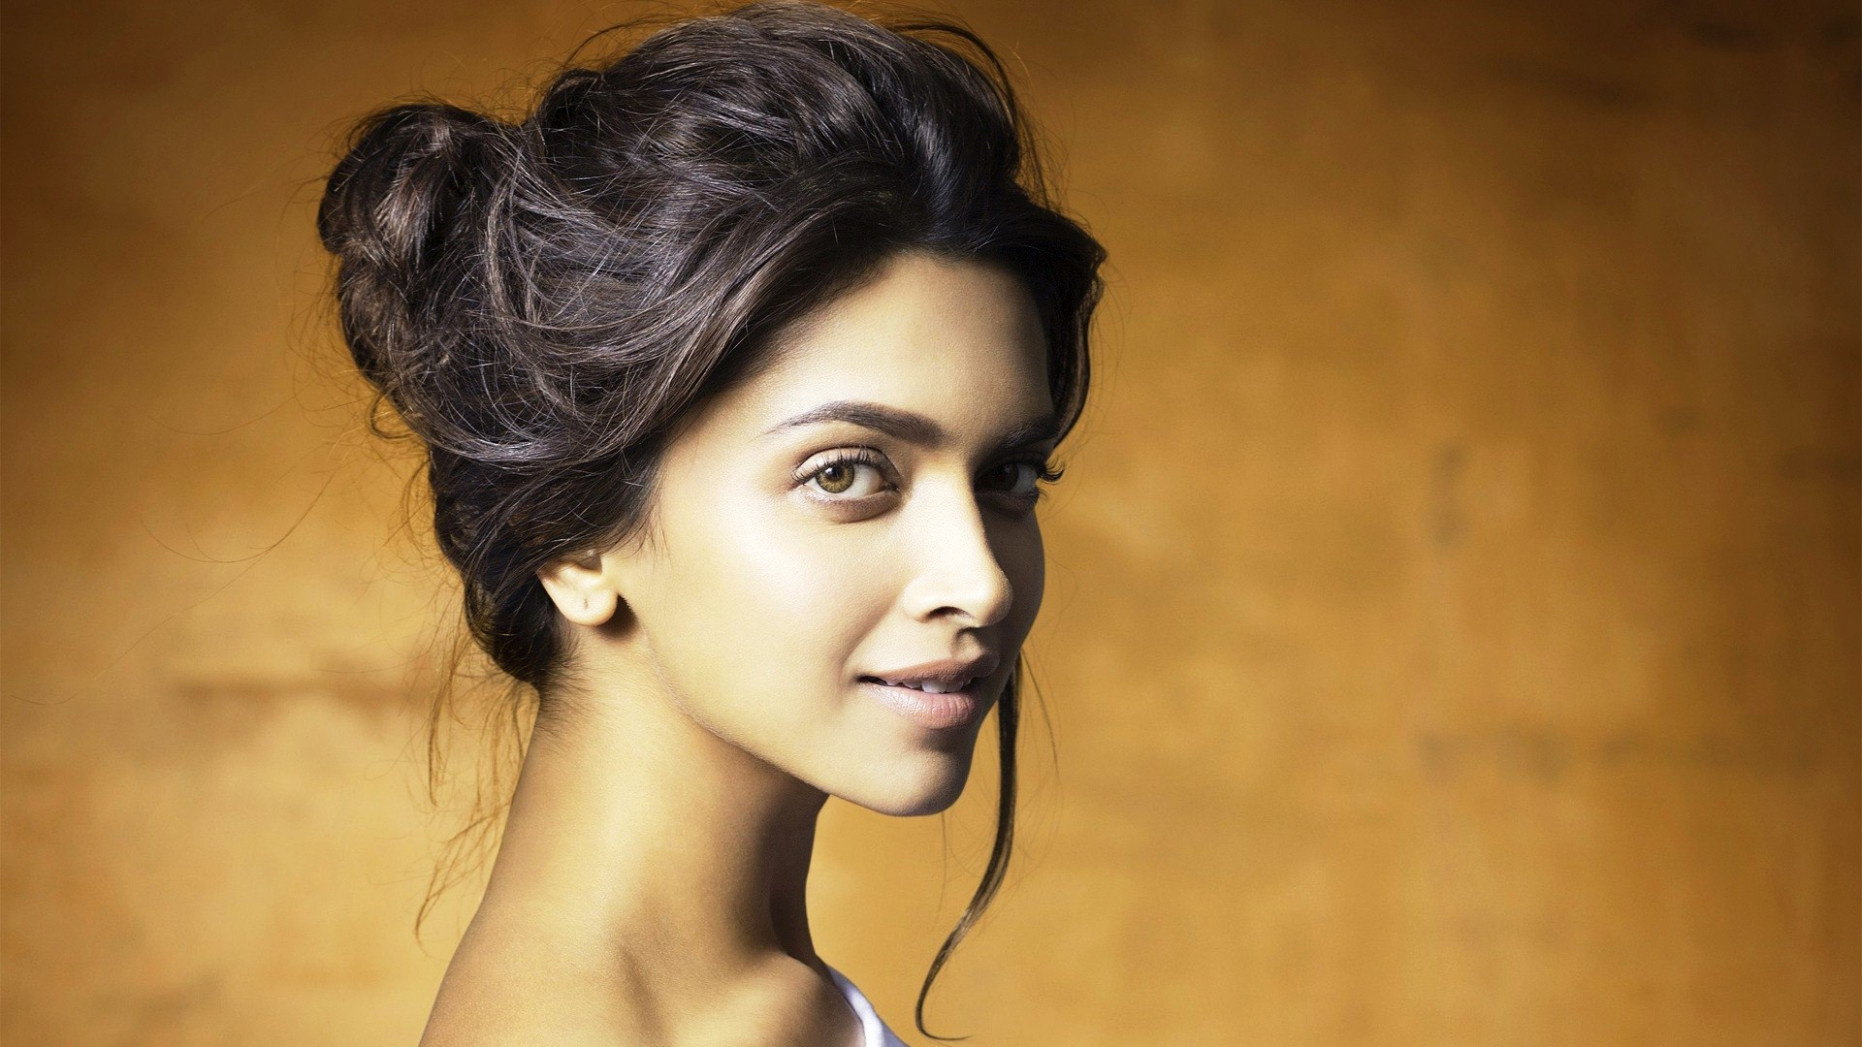 Beautifull Hindi Movie Star Actress Deepika Padukone HD ...